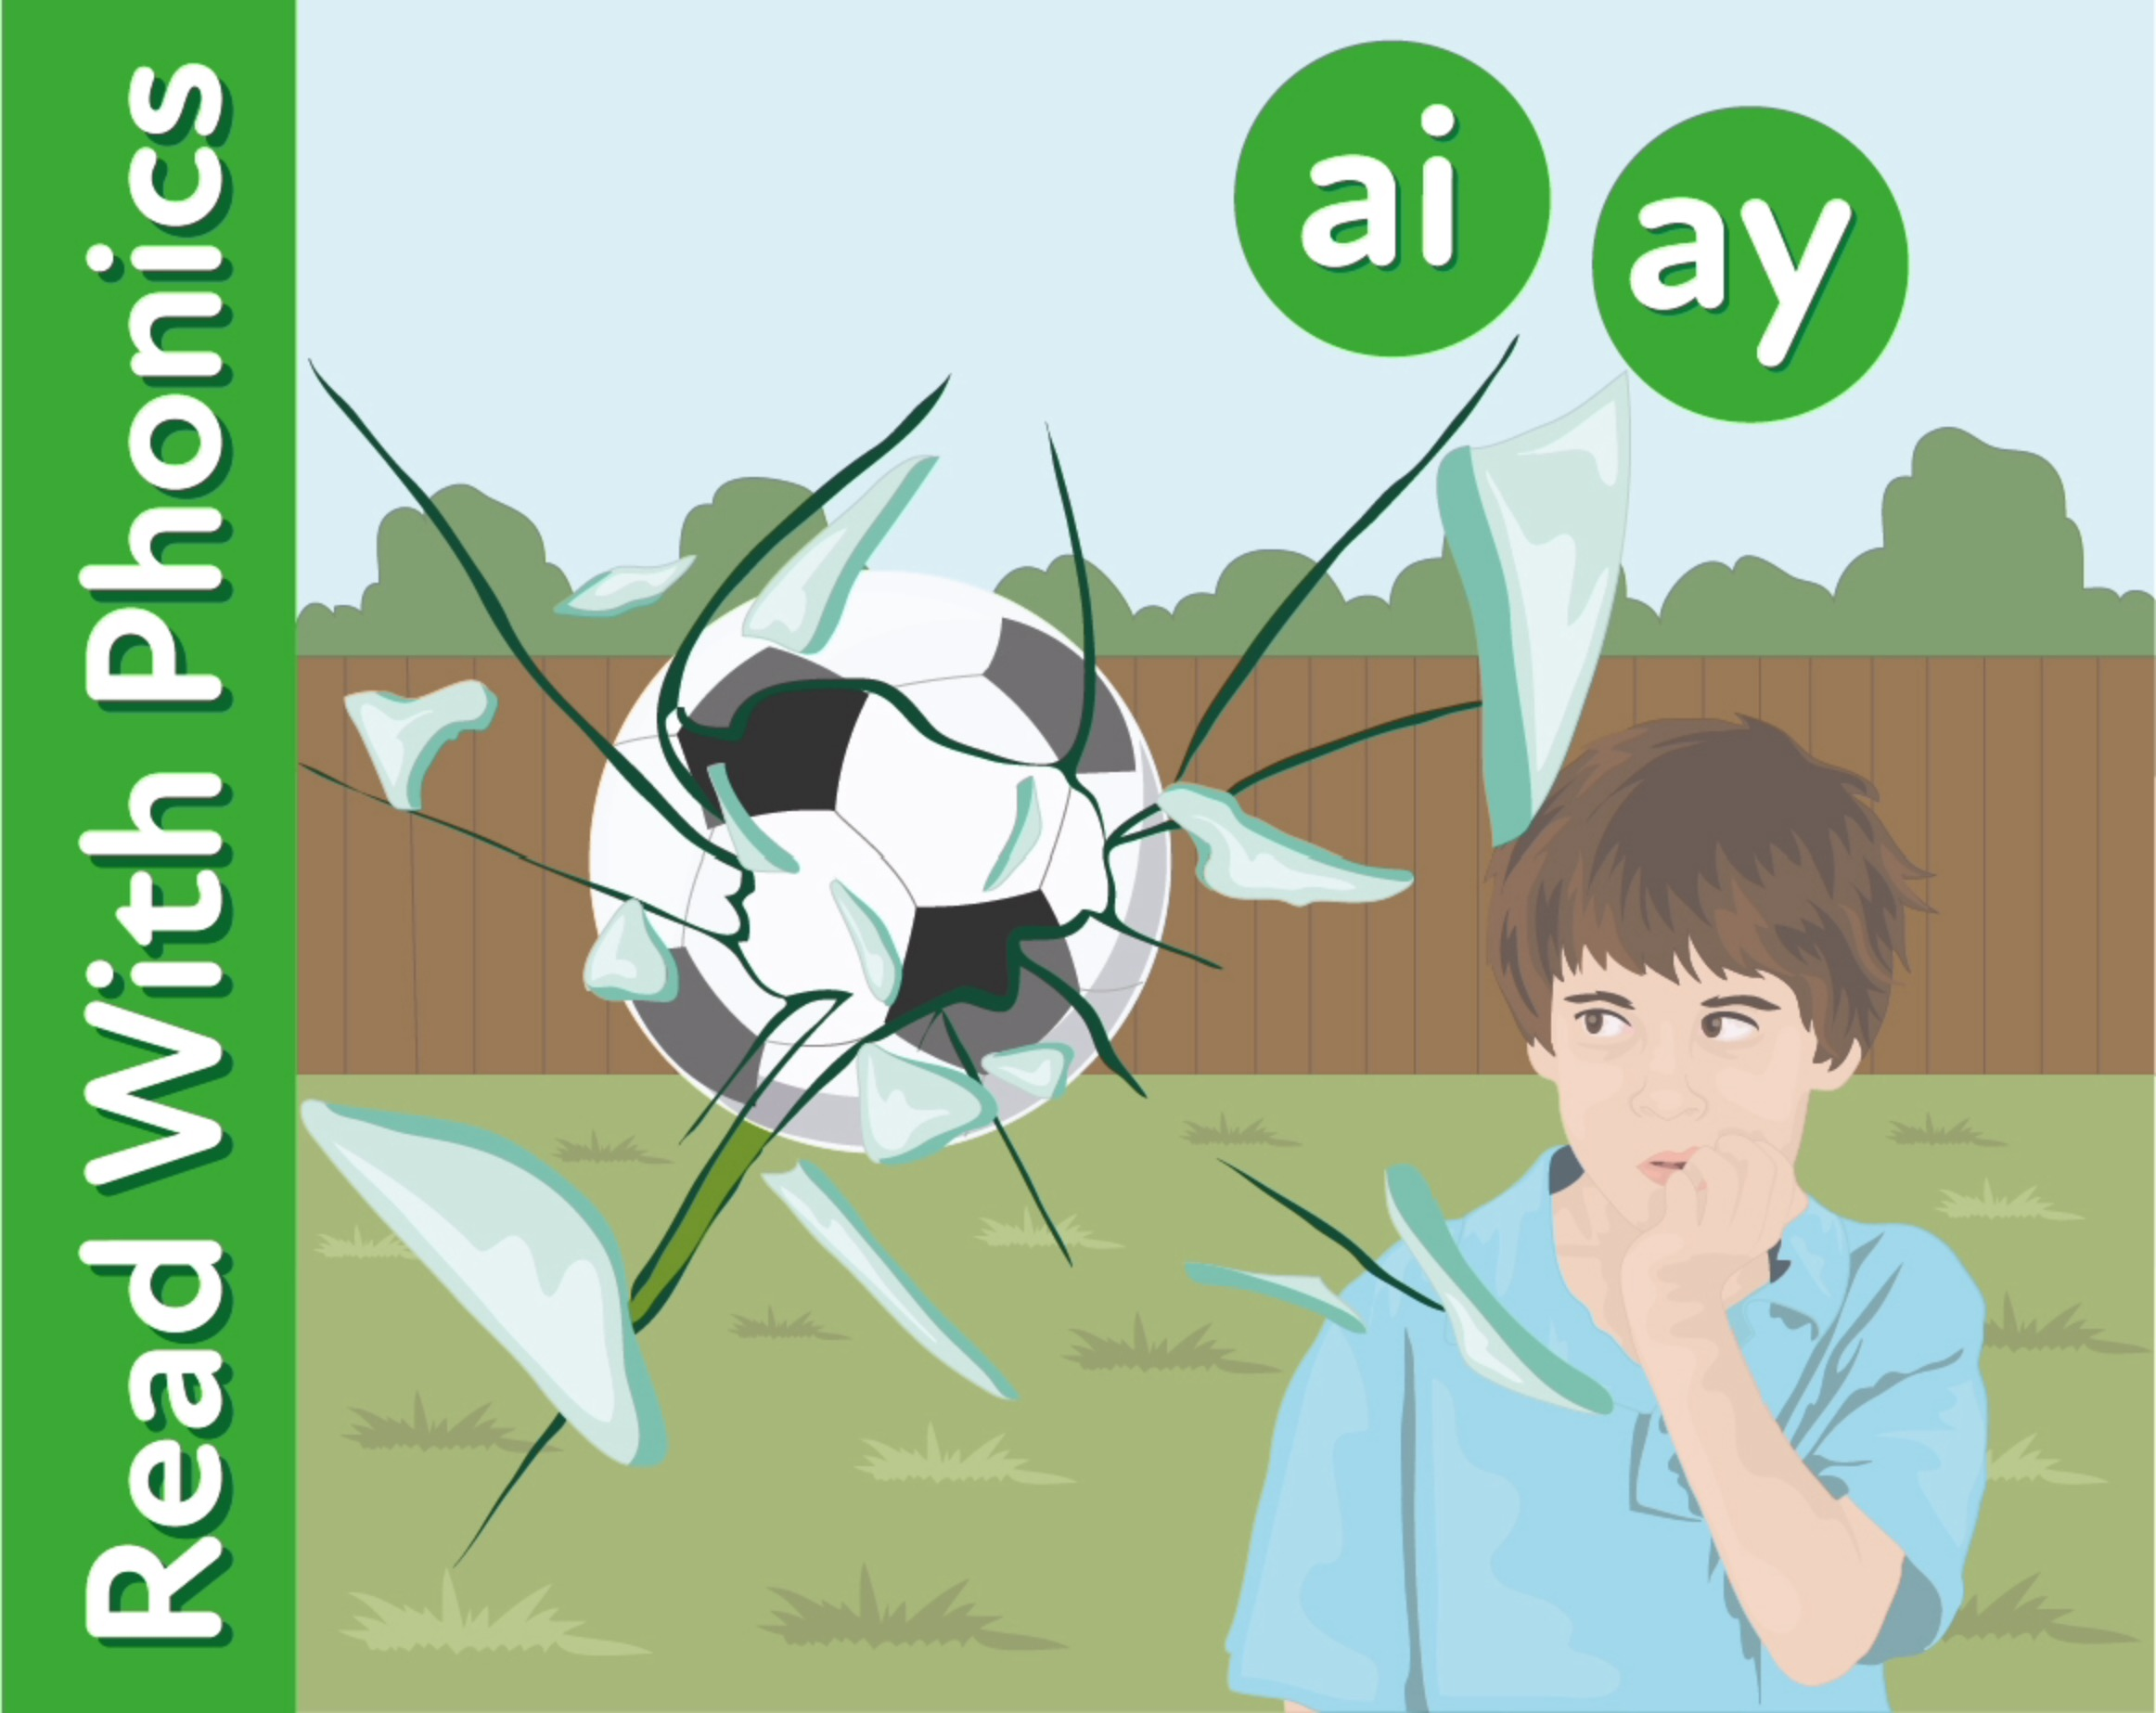 Learn The Phonic Sounds 'ai' and 'ay'